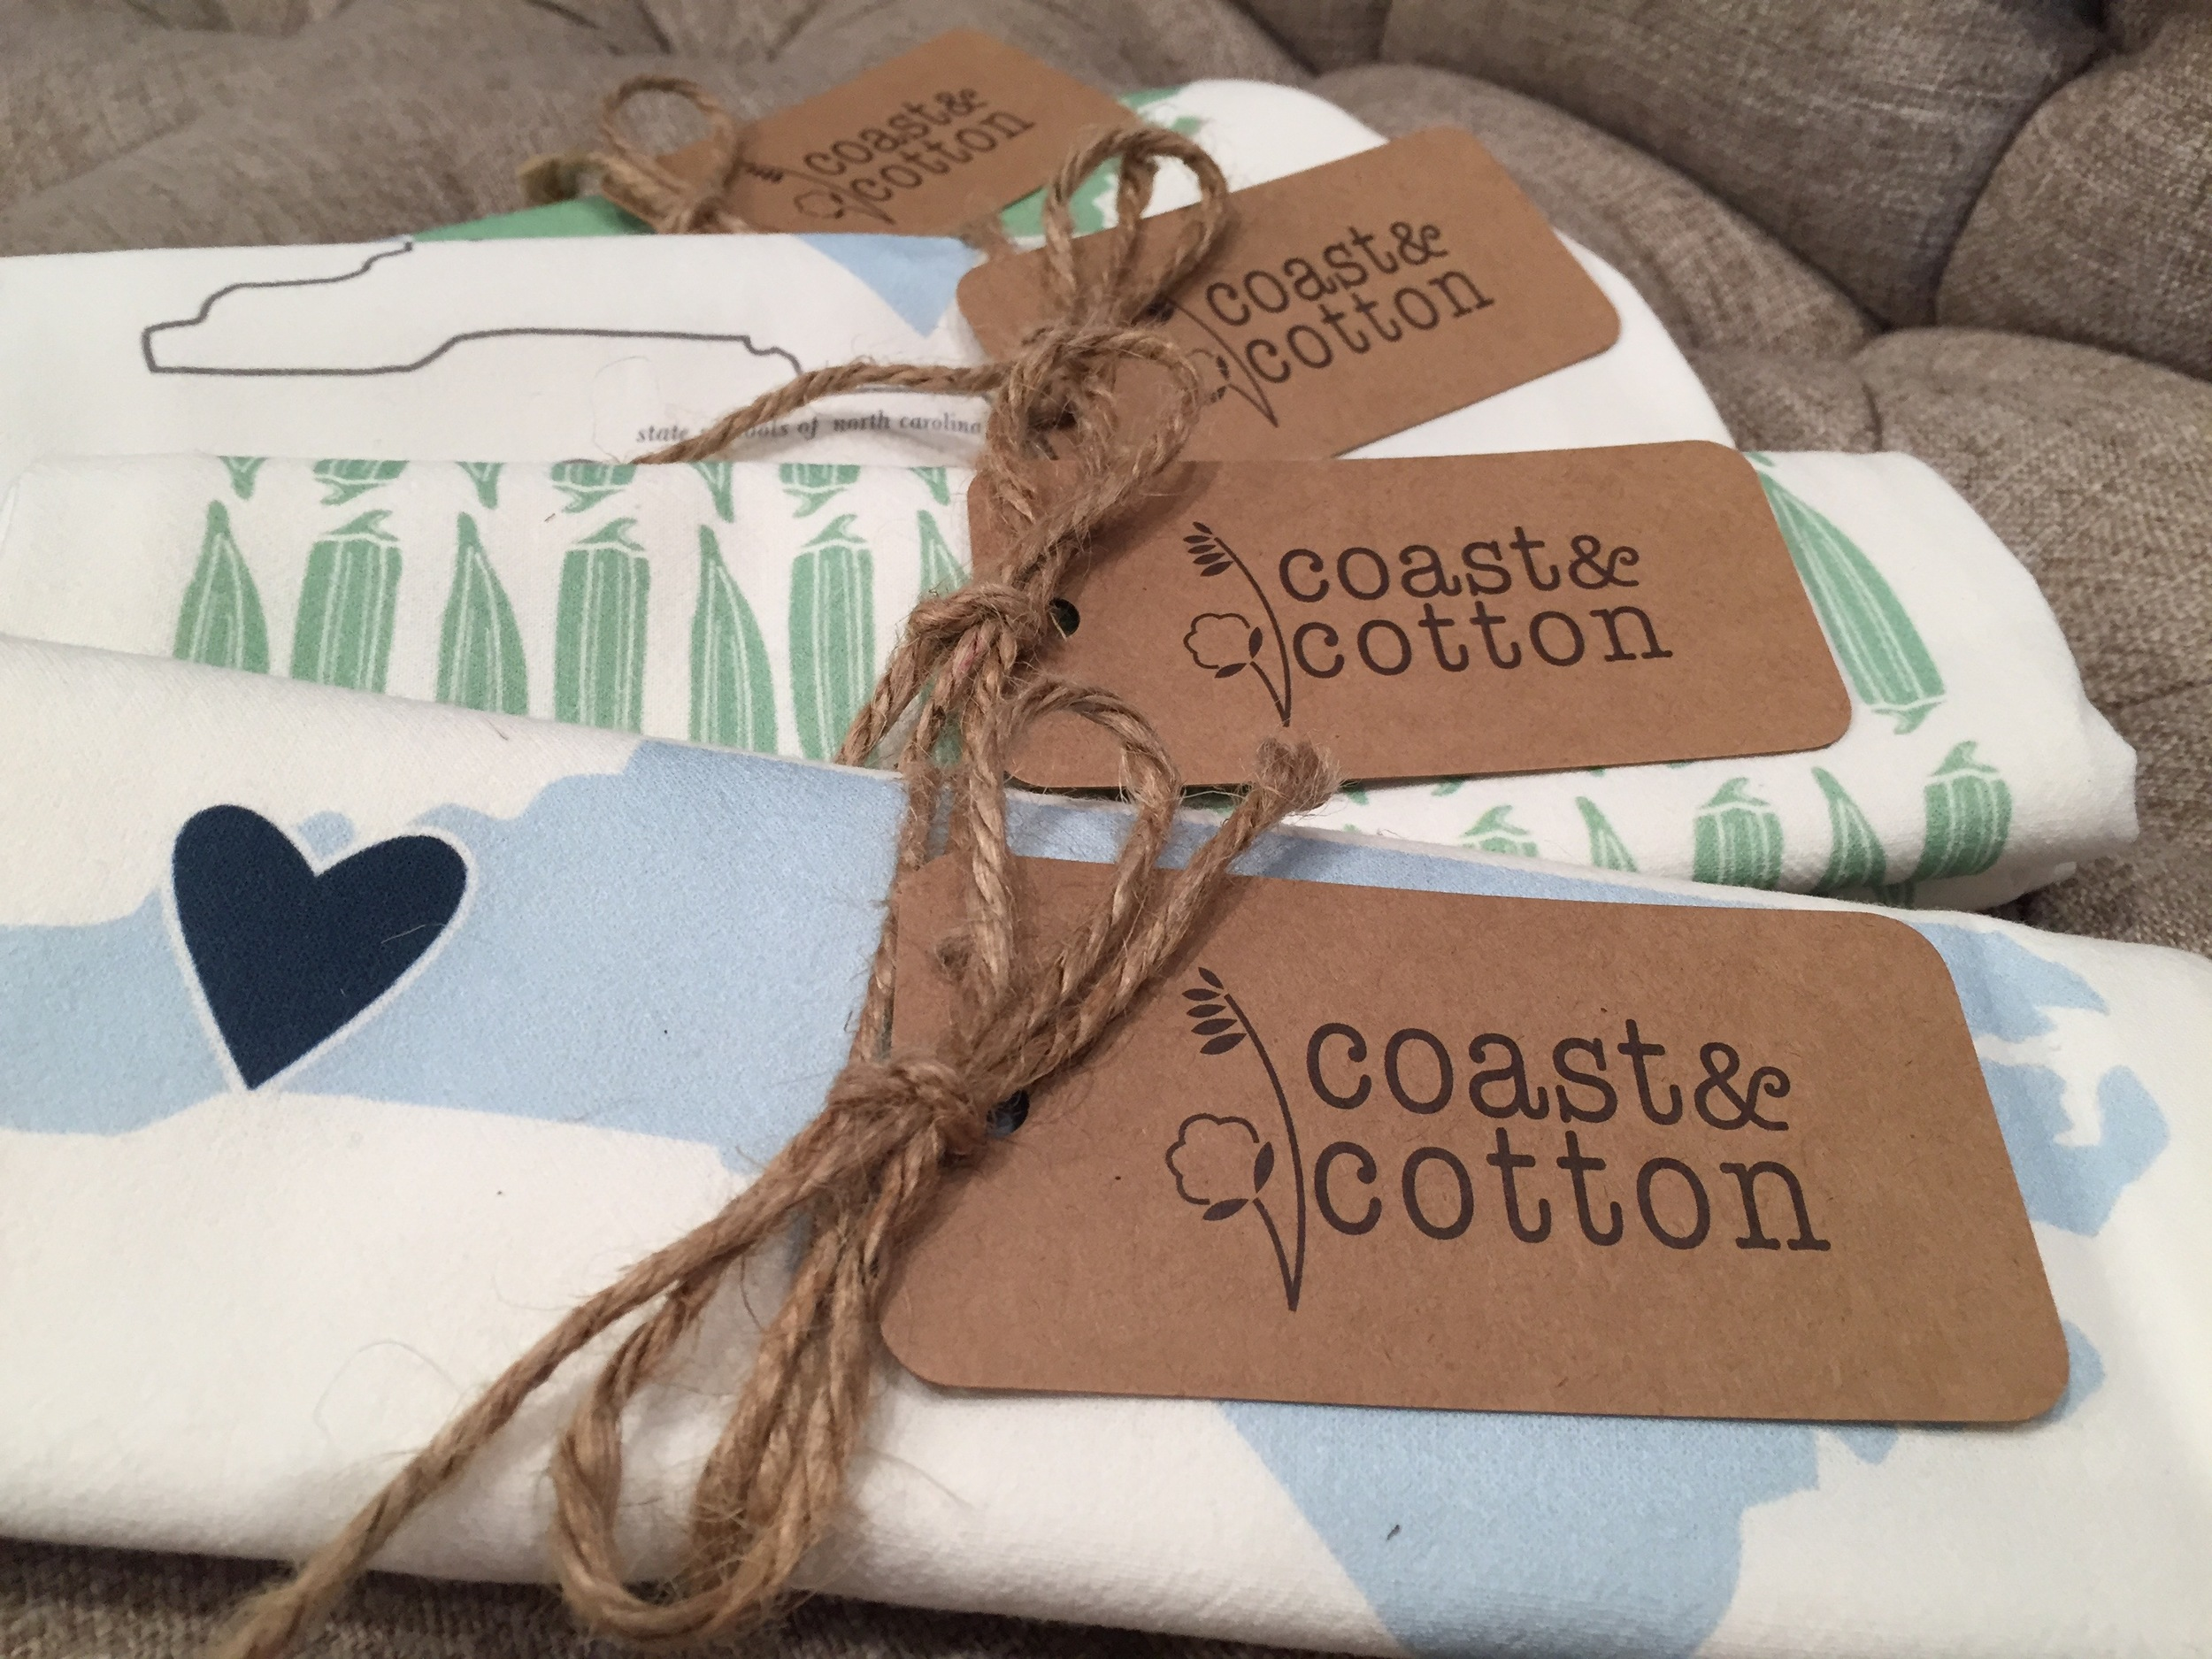 coast & cotton